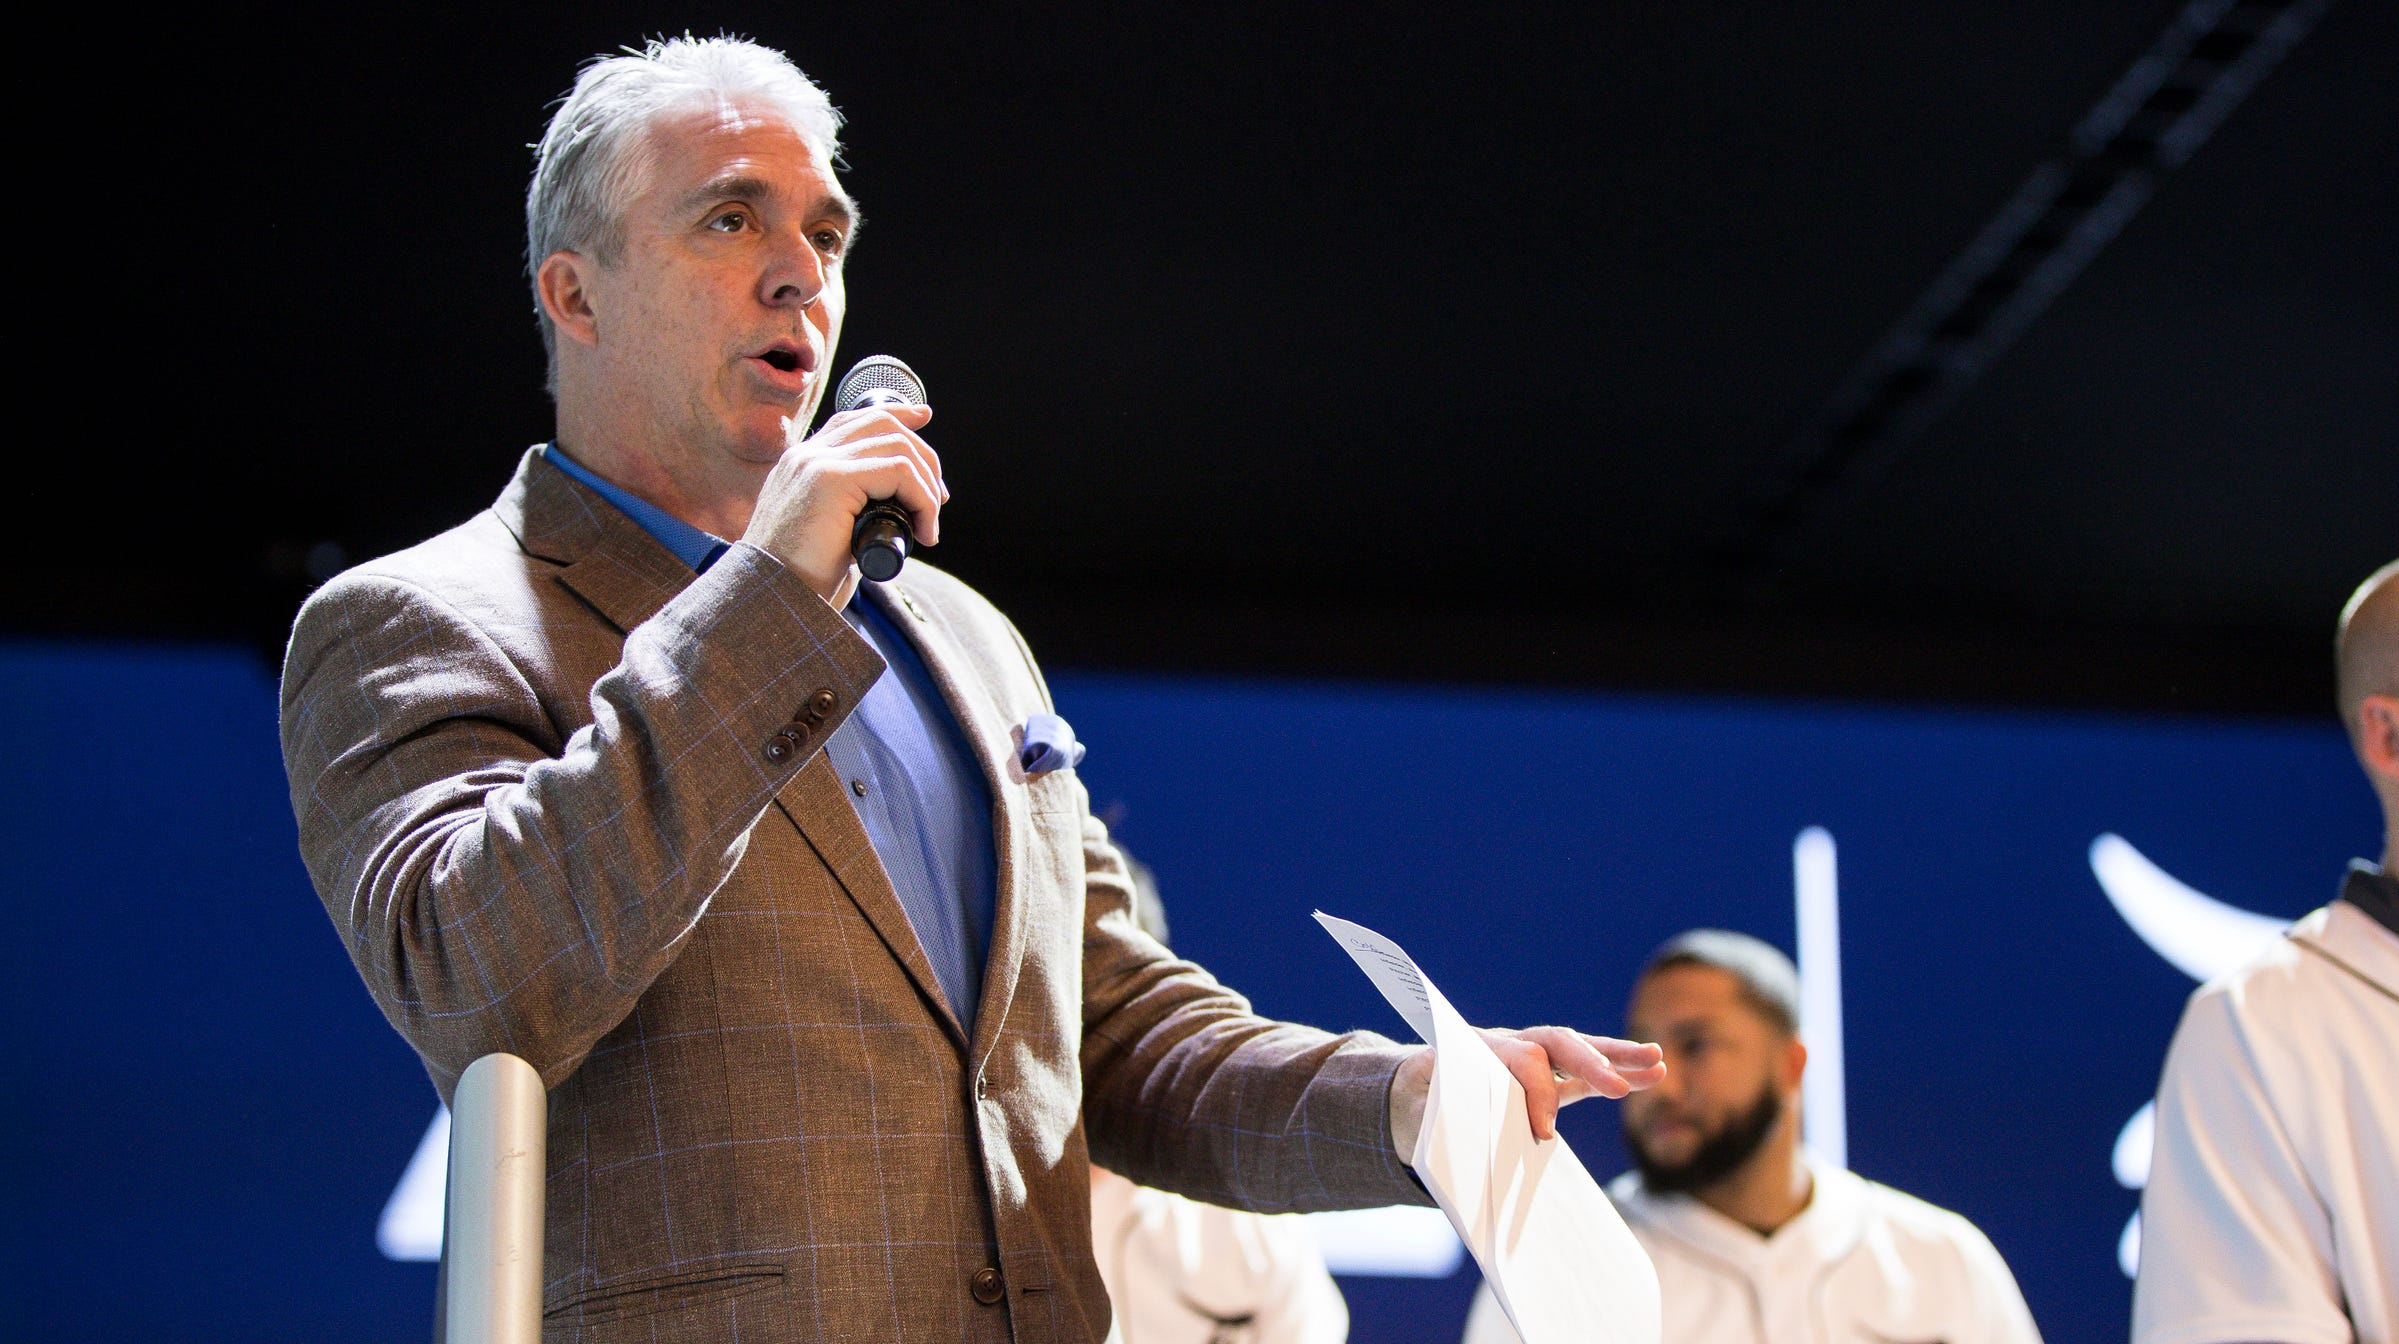 Detroit Tigers play-by-play voice Matt Shepard speaks during the Detroit Tigers Winter Caravan at the 2019 North American International Auto Show  at Cobo Center in Detroit on Friday, January 25, 2019.